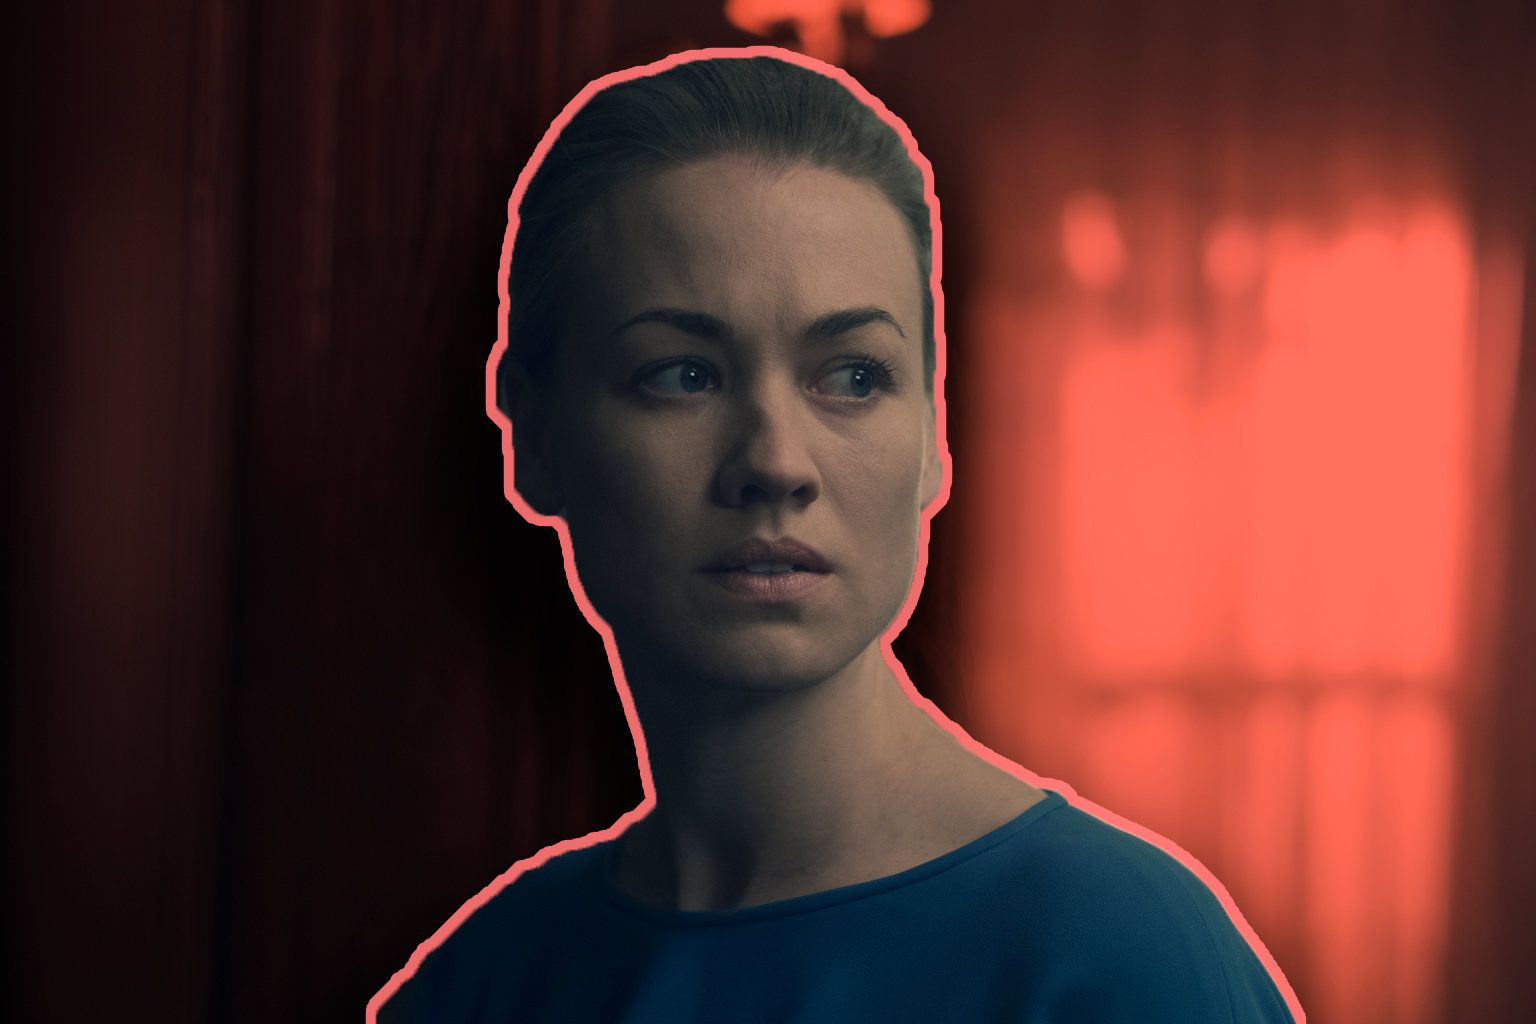 Yvonne Strahovski Plays The Most-Hated Woman On TV. And She Knows